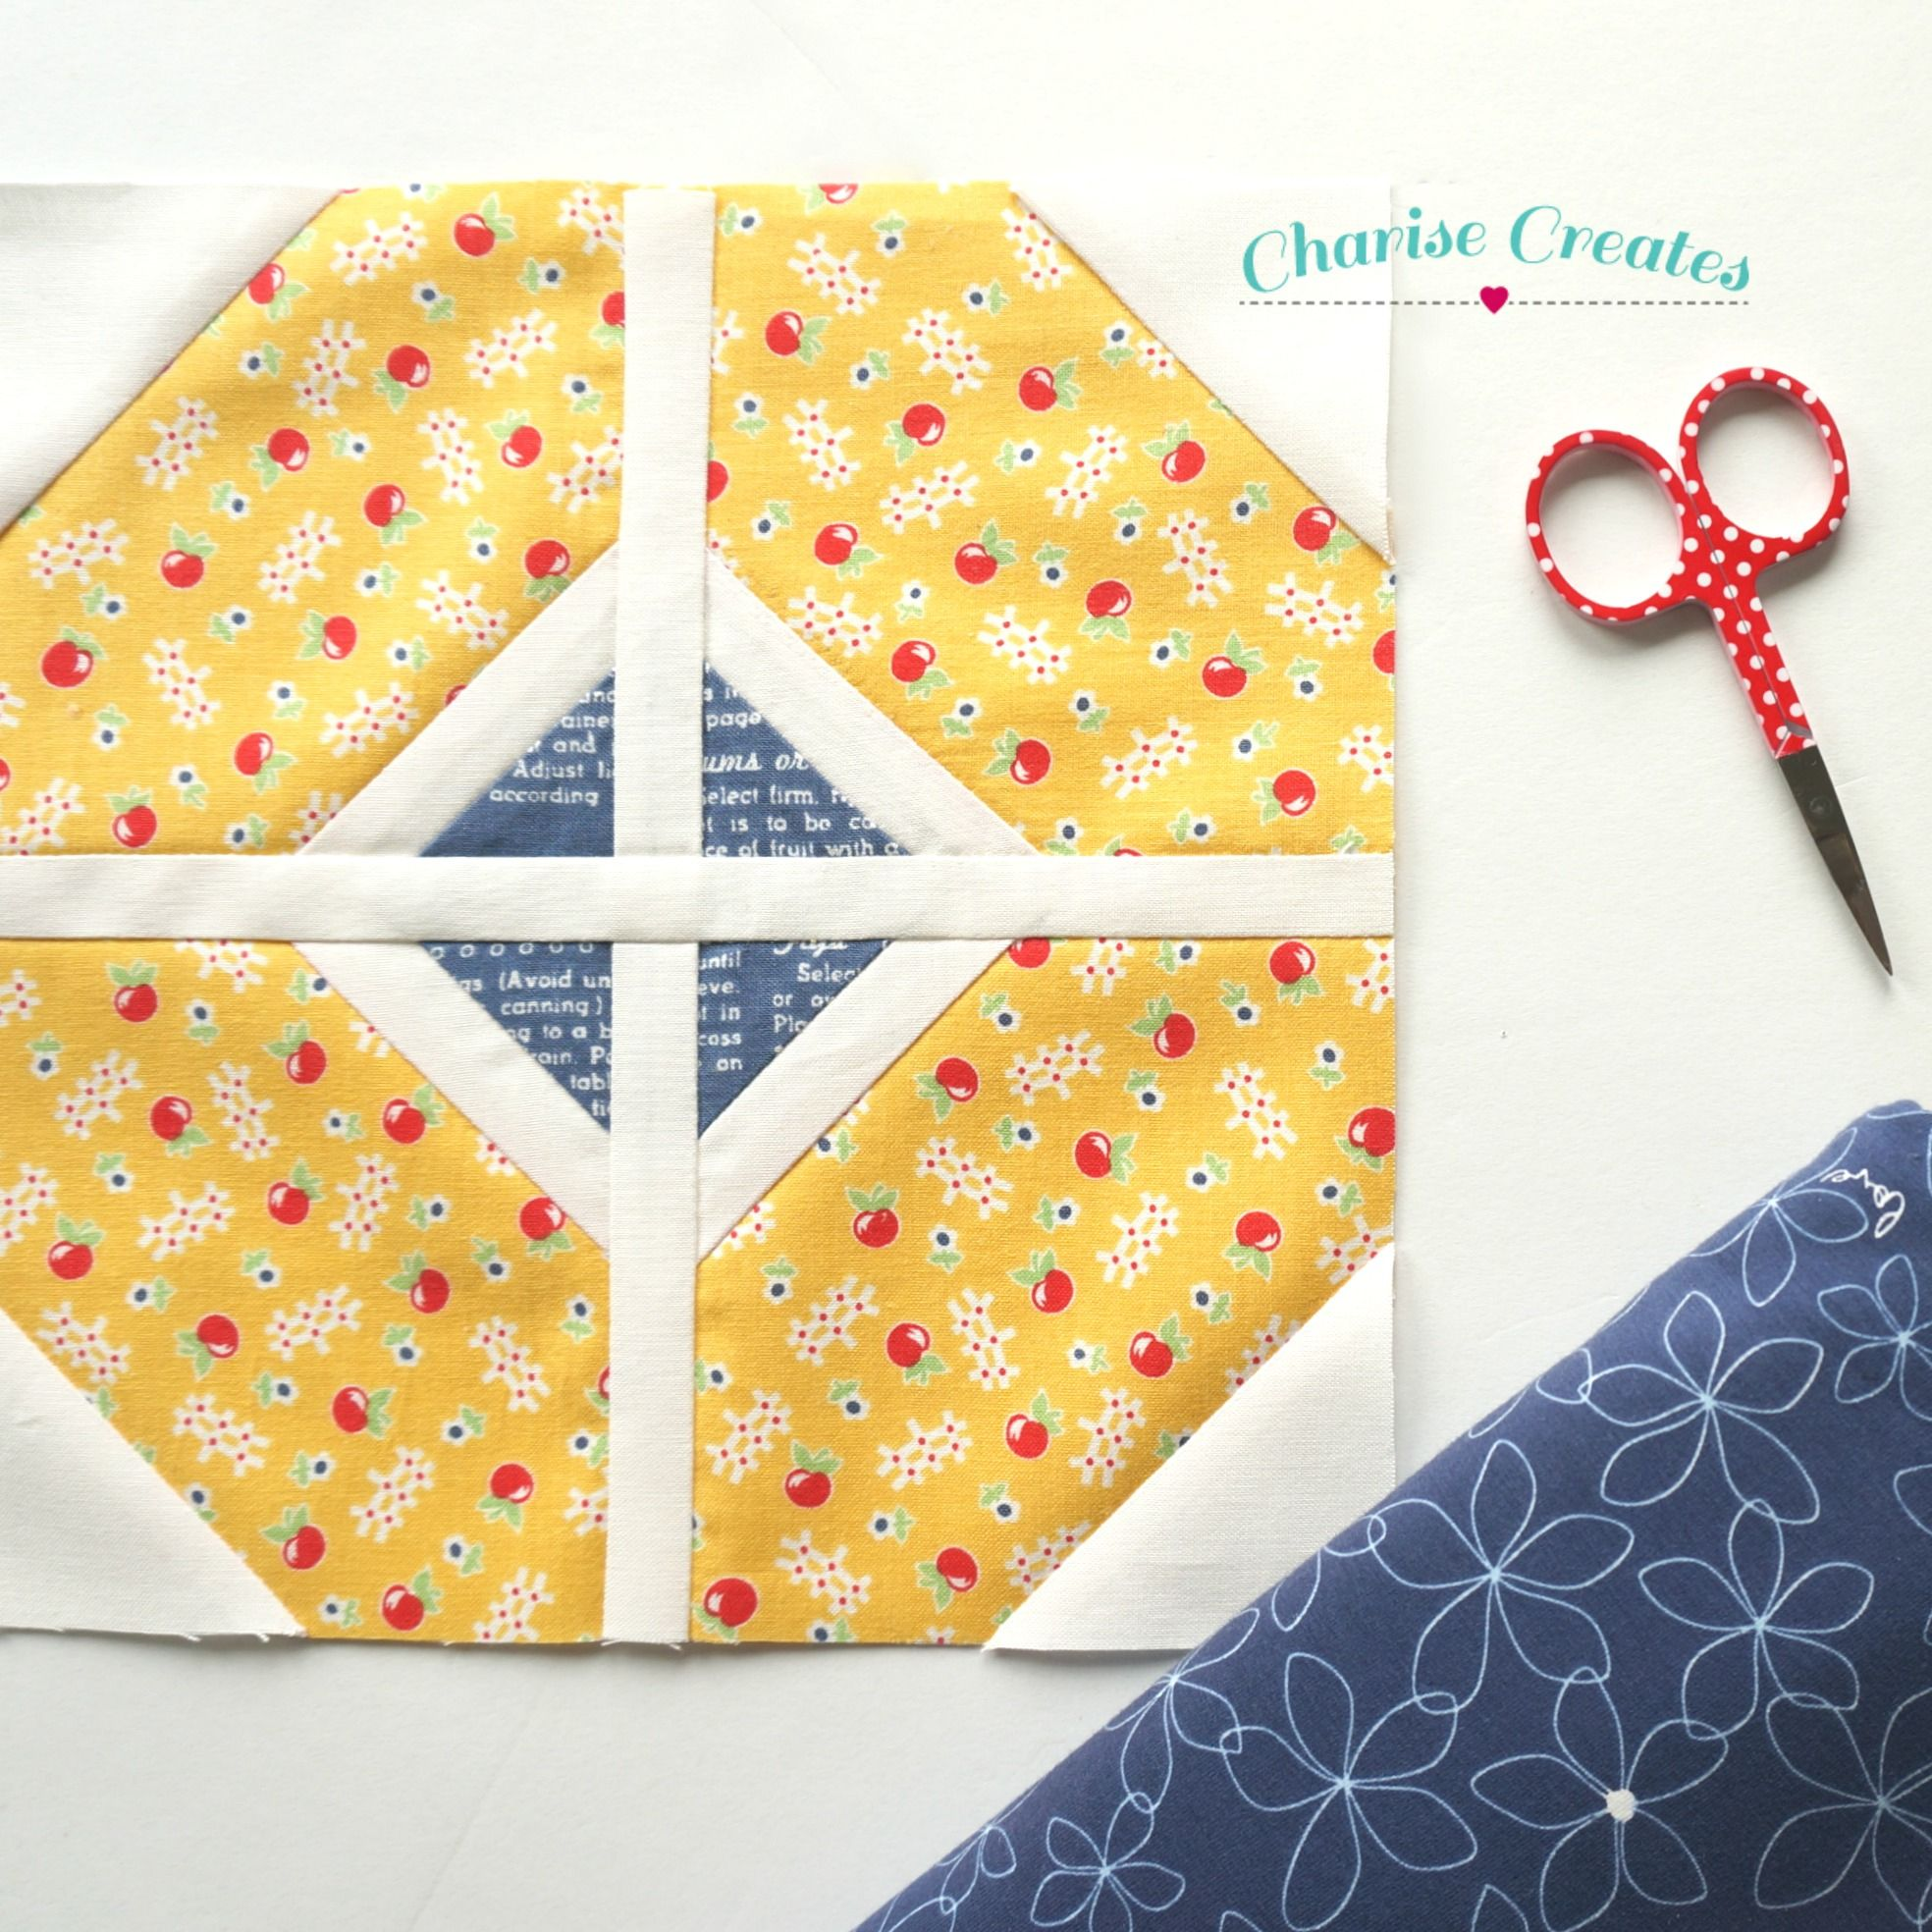 I Was Working On This Cute Apple Pattern From The New Book